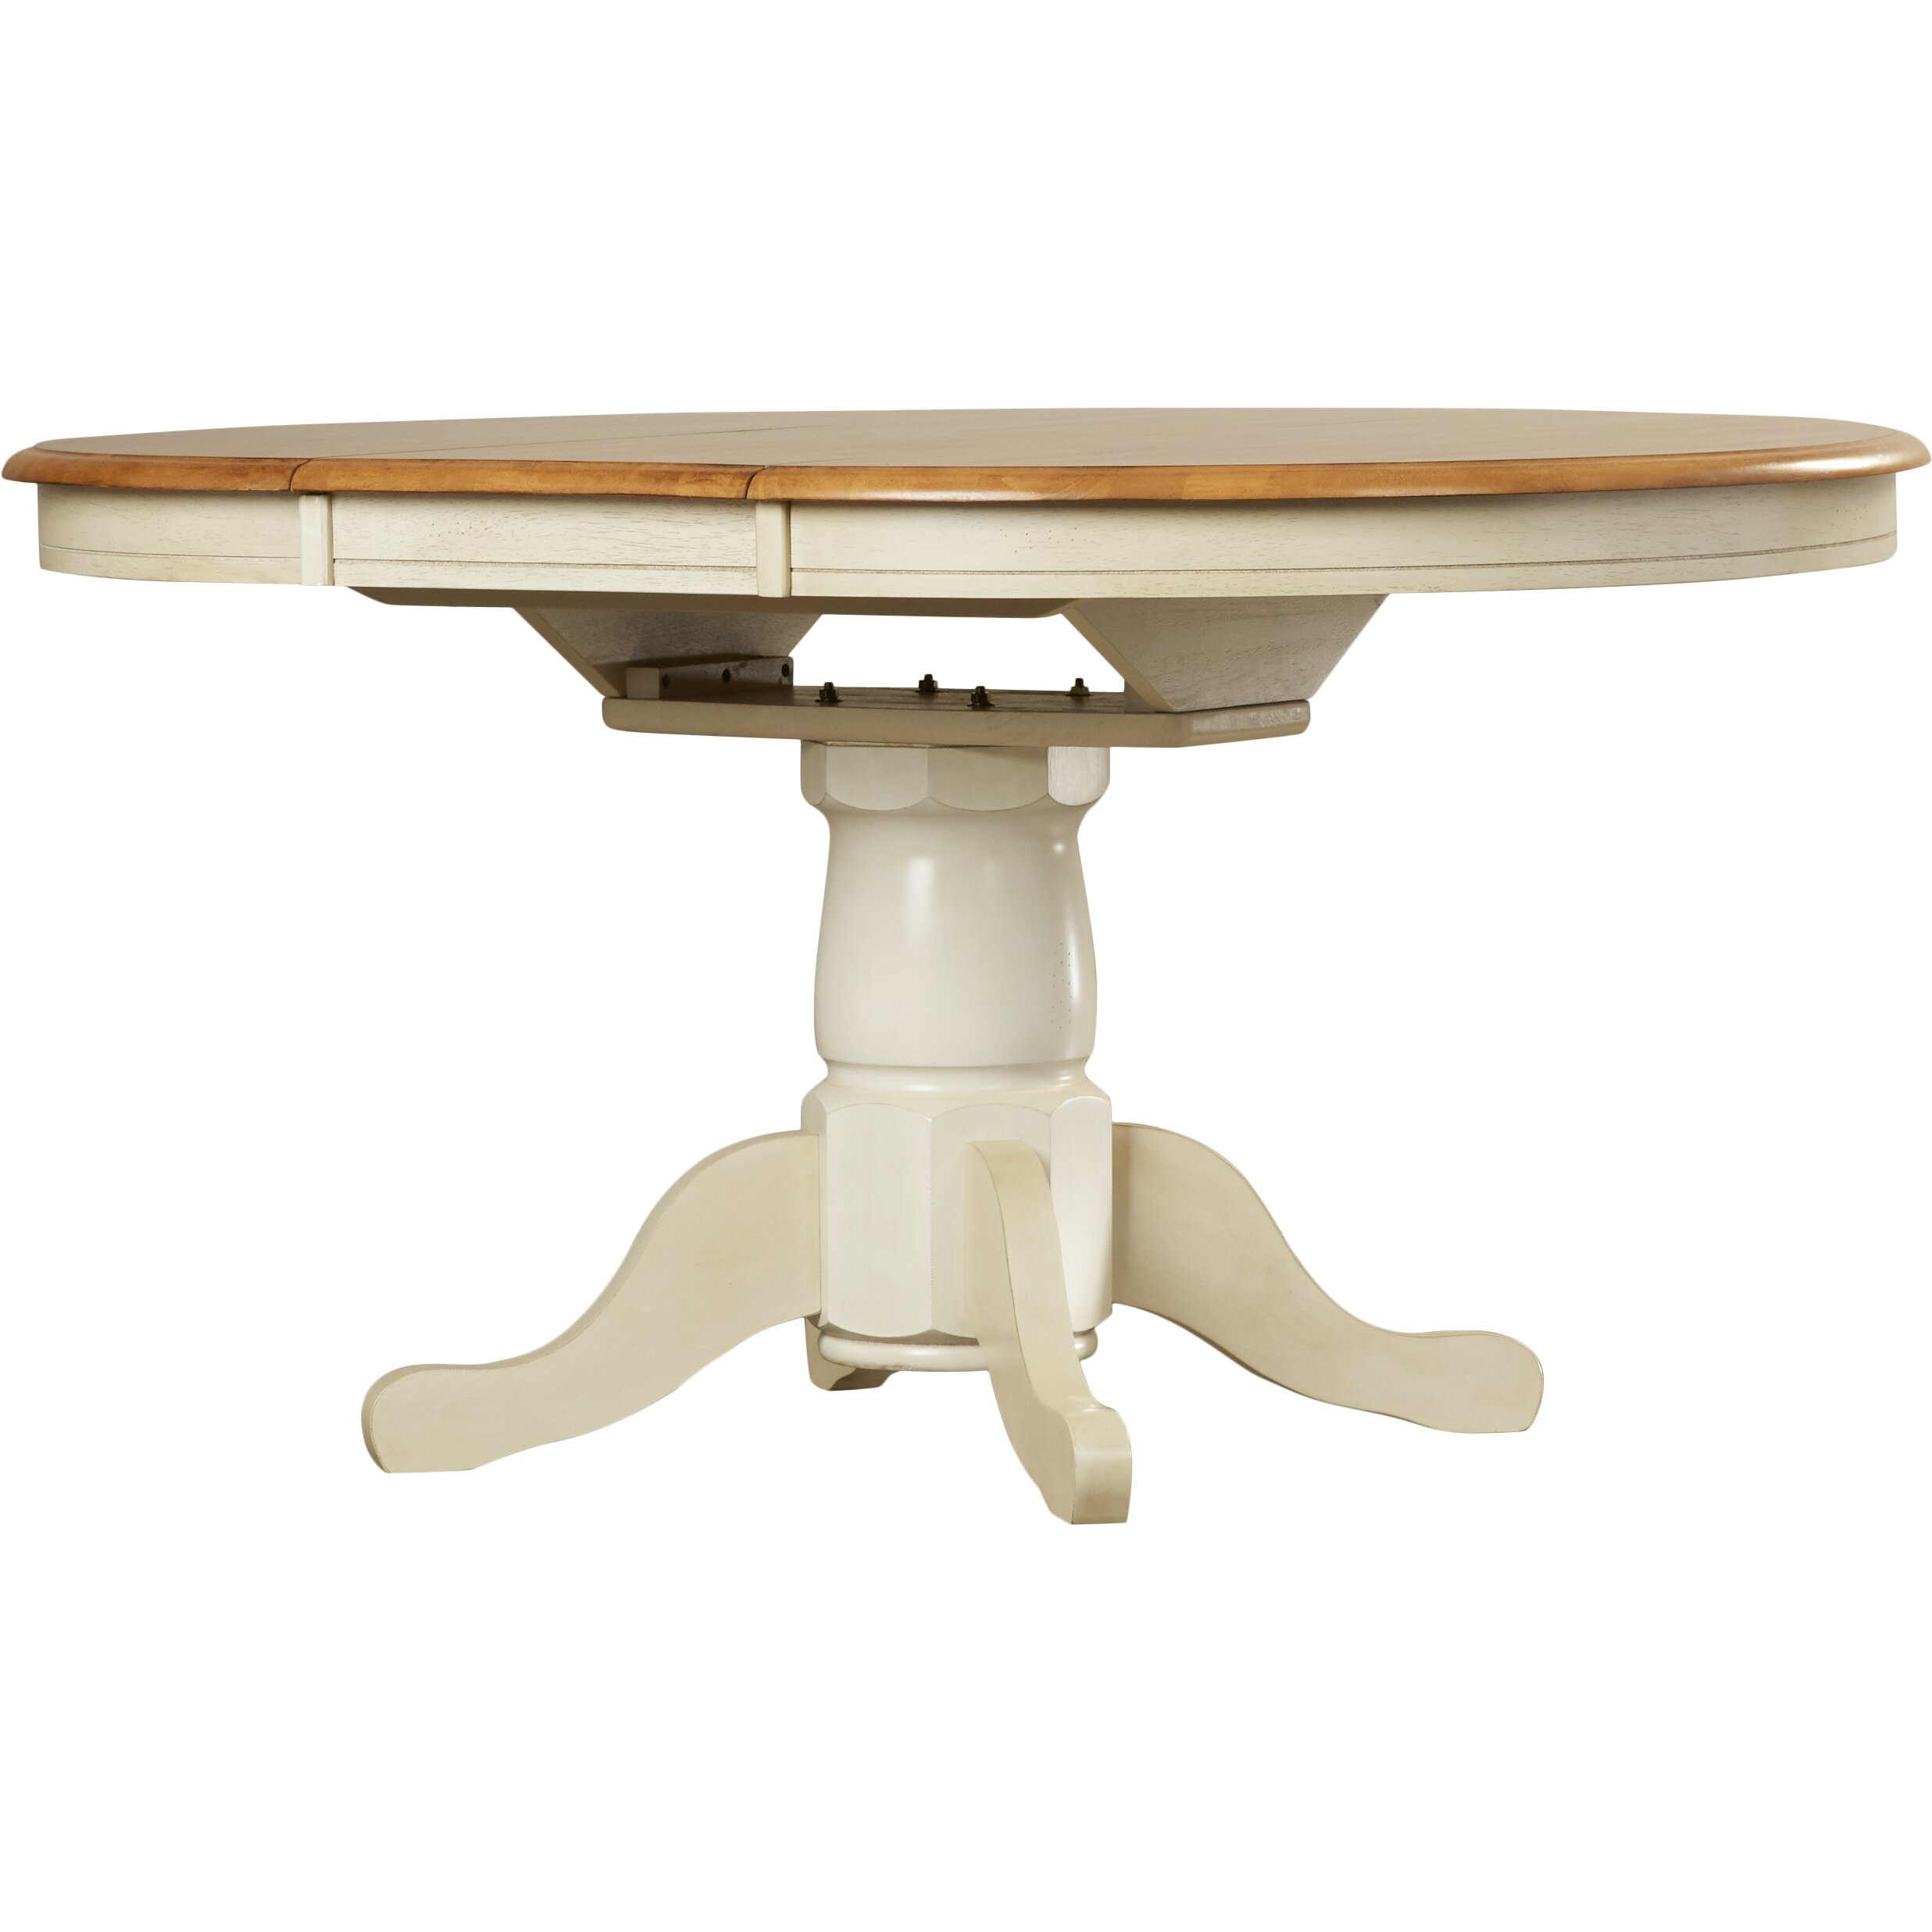 Small Round Table For Office P Igtico – Small Round Office Table